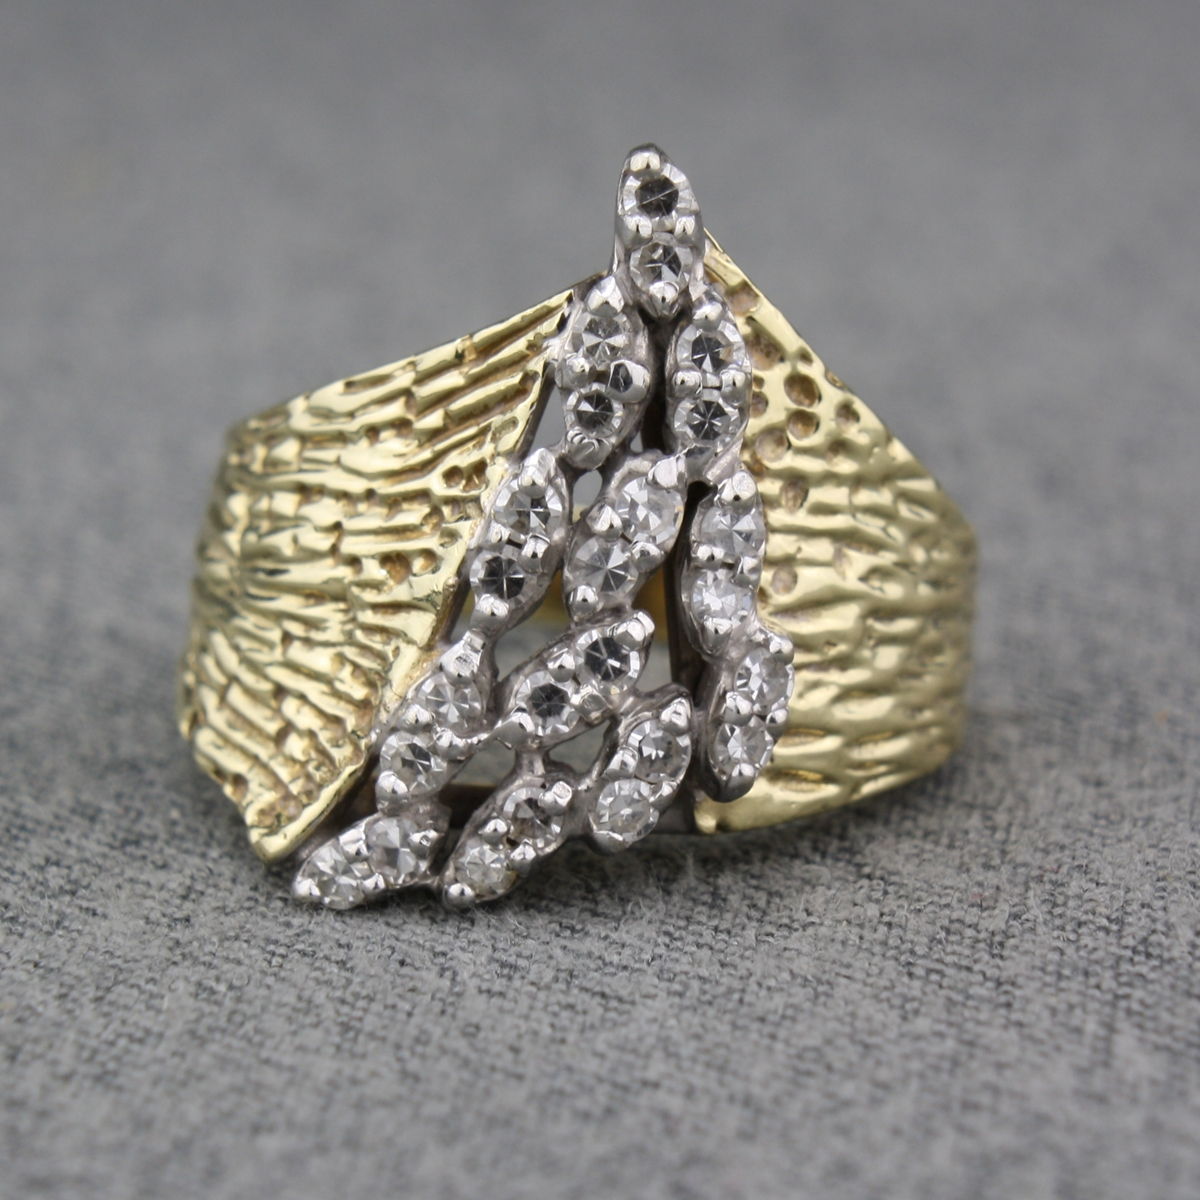 Preowned 14 Karat Yellow Gold Diamond Cluster Ring